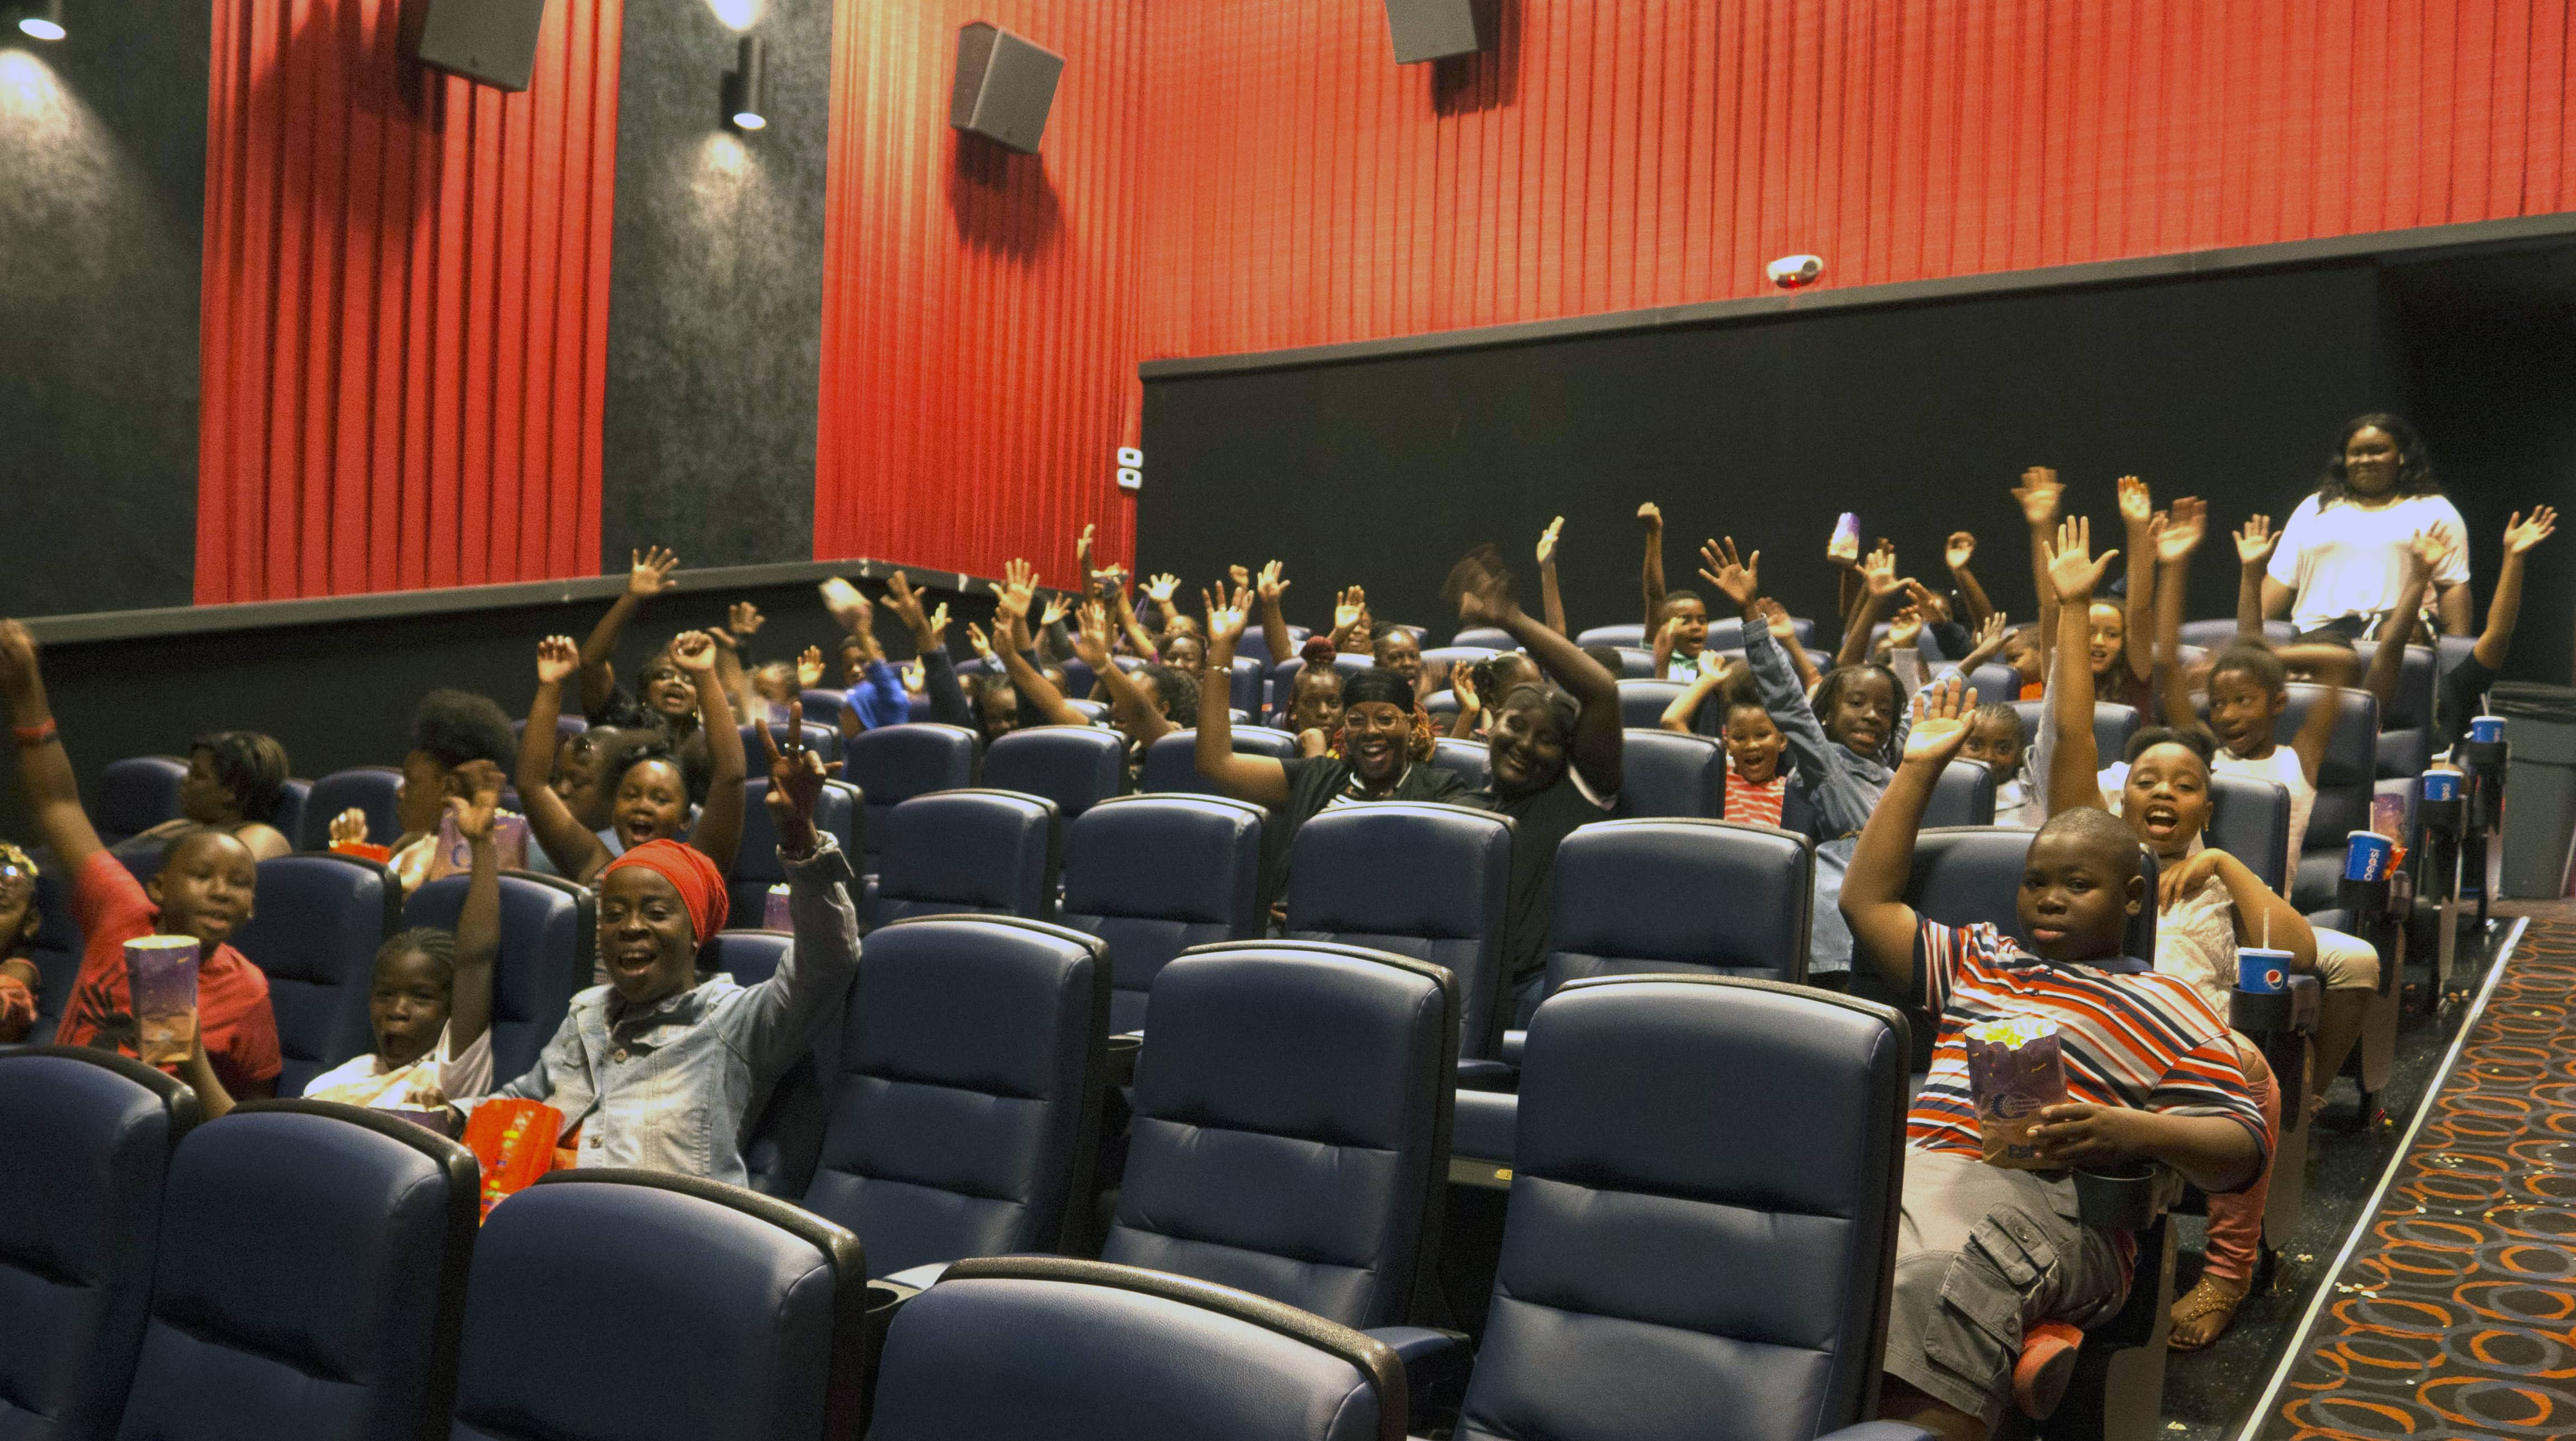 10TH ANNUAL GOVERNOR'S SUMMER READING CHALLENGE CELEBRATES STTJ DISTRICT READERS WITH DAY AT THE MOVIES